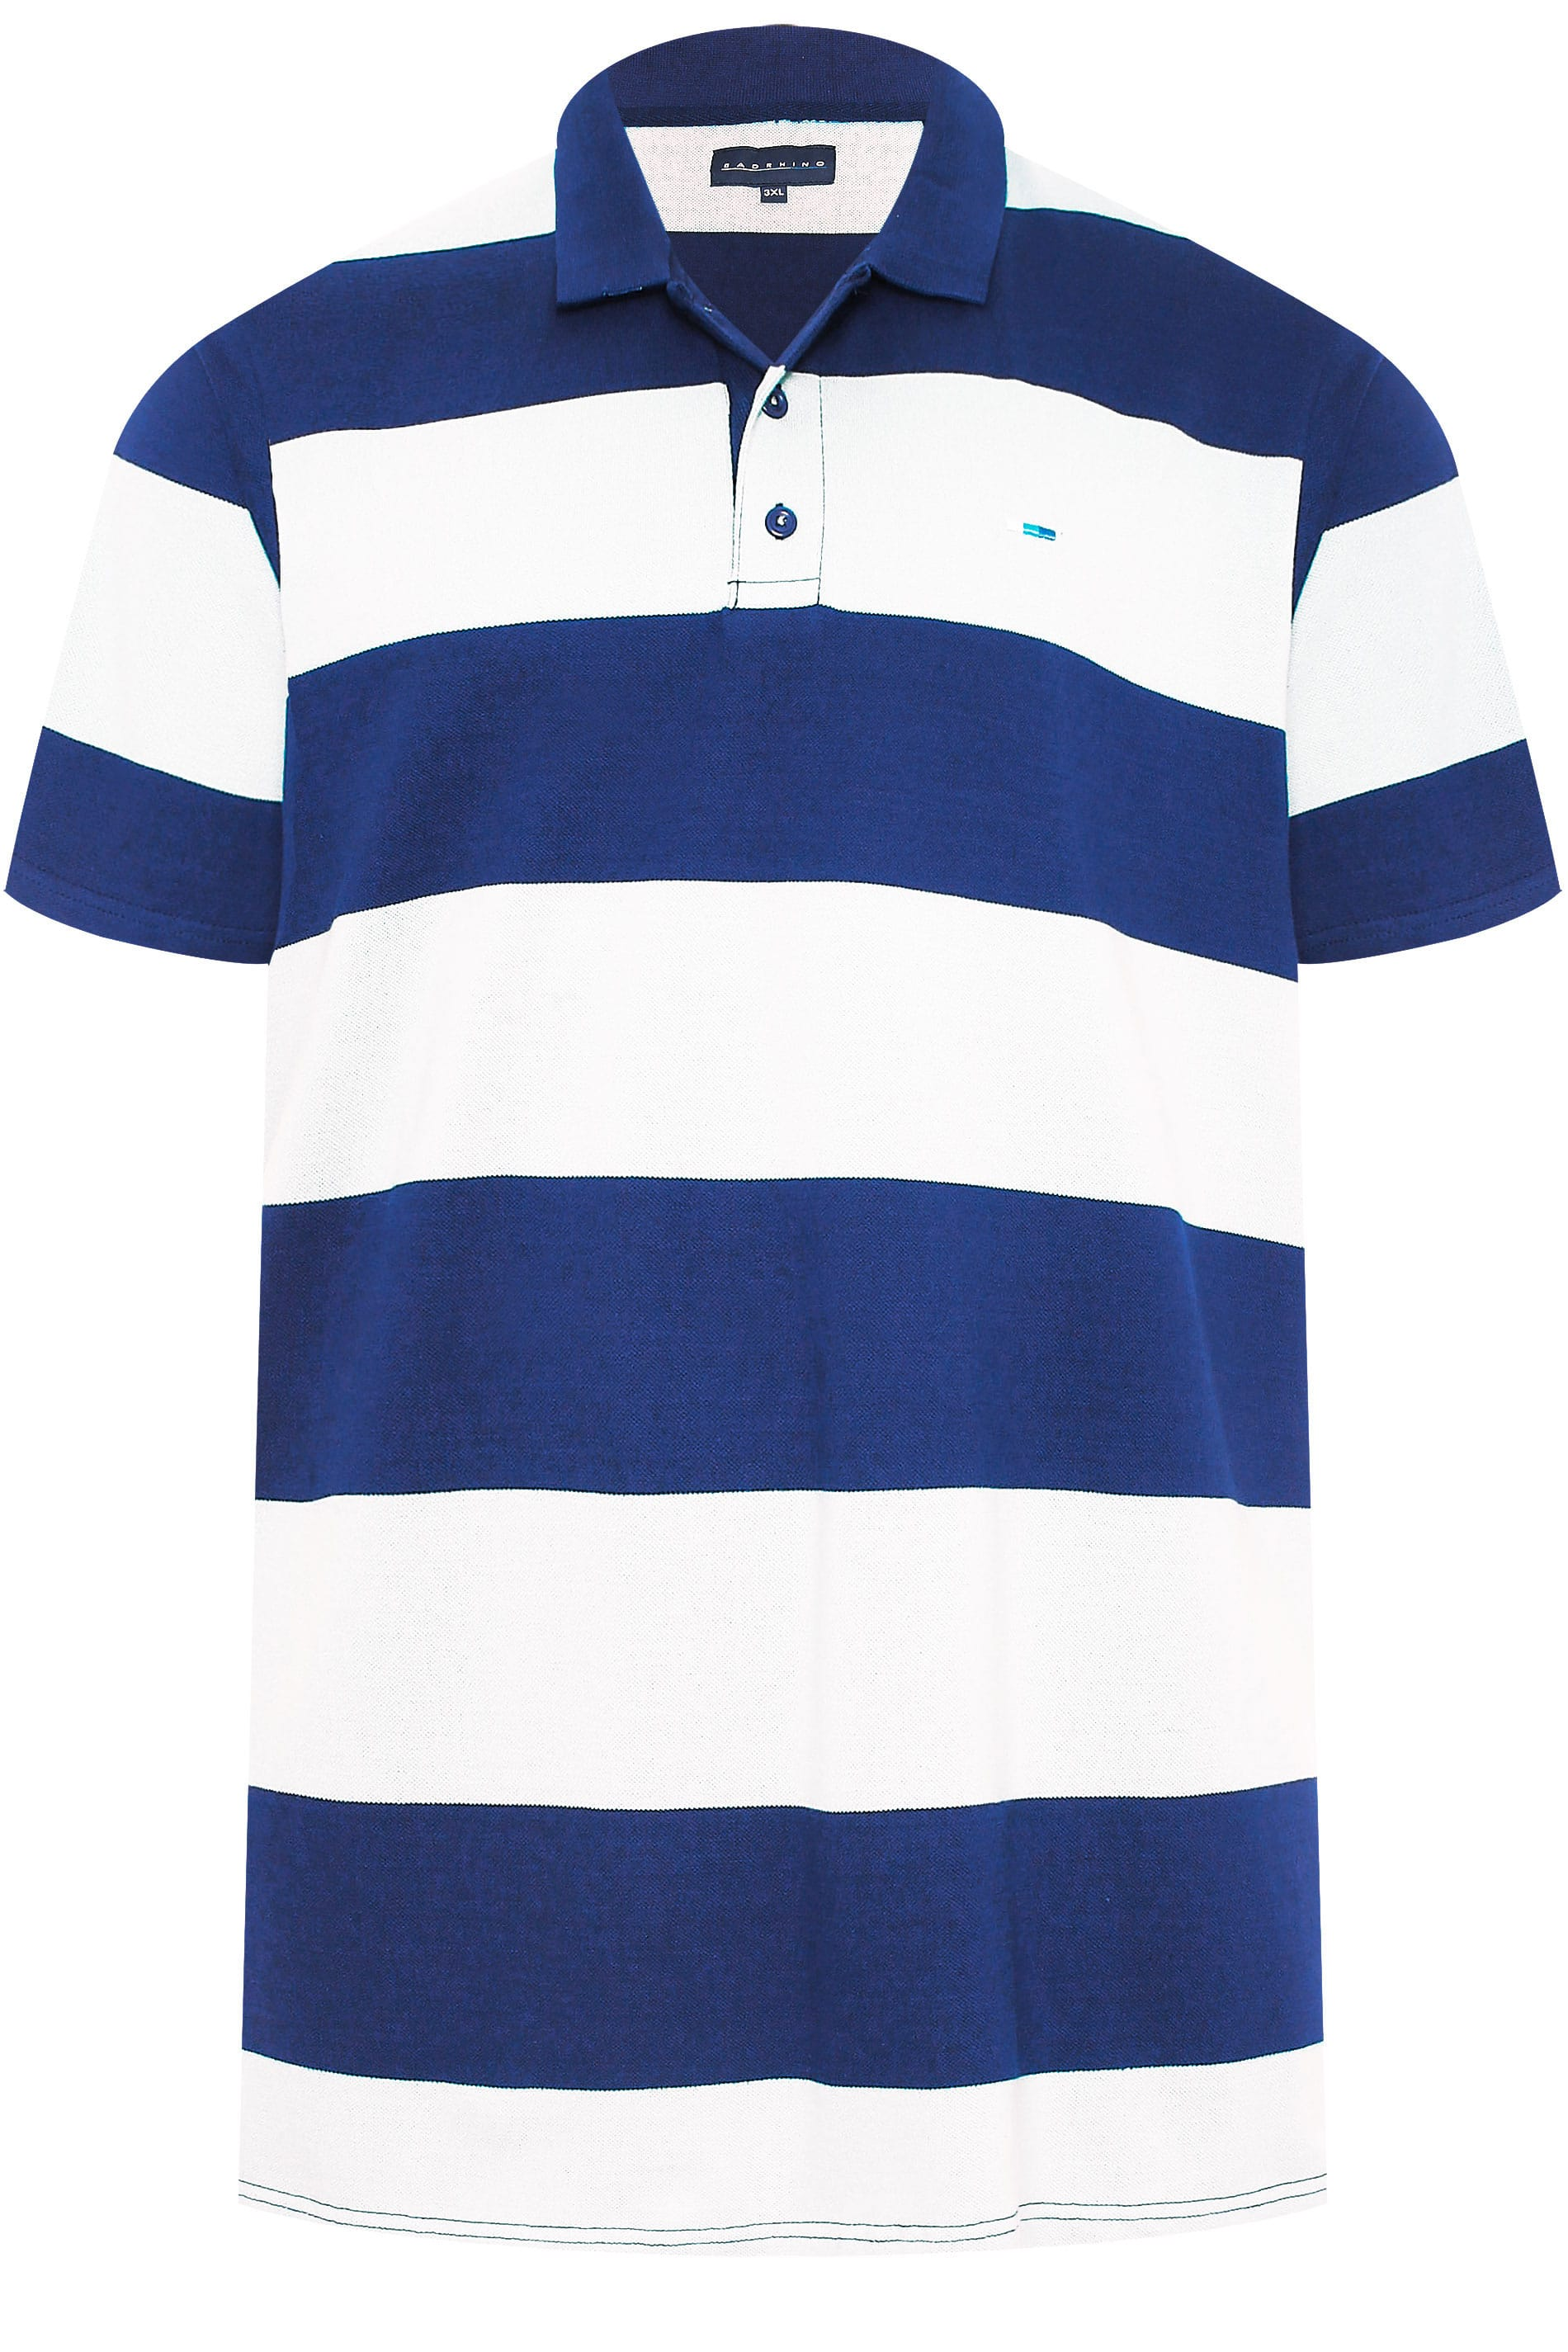 scintilla dentista capitolo  BadRhino Royal Blue & White Block Striped Polo Shirt | BadRhino